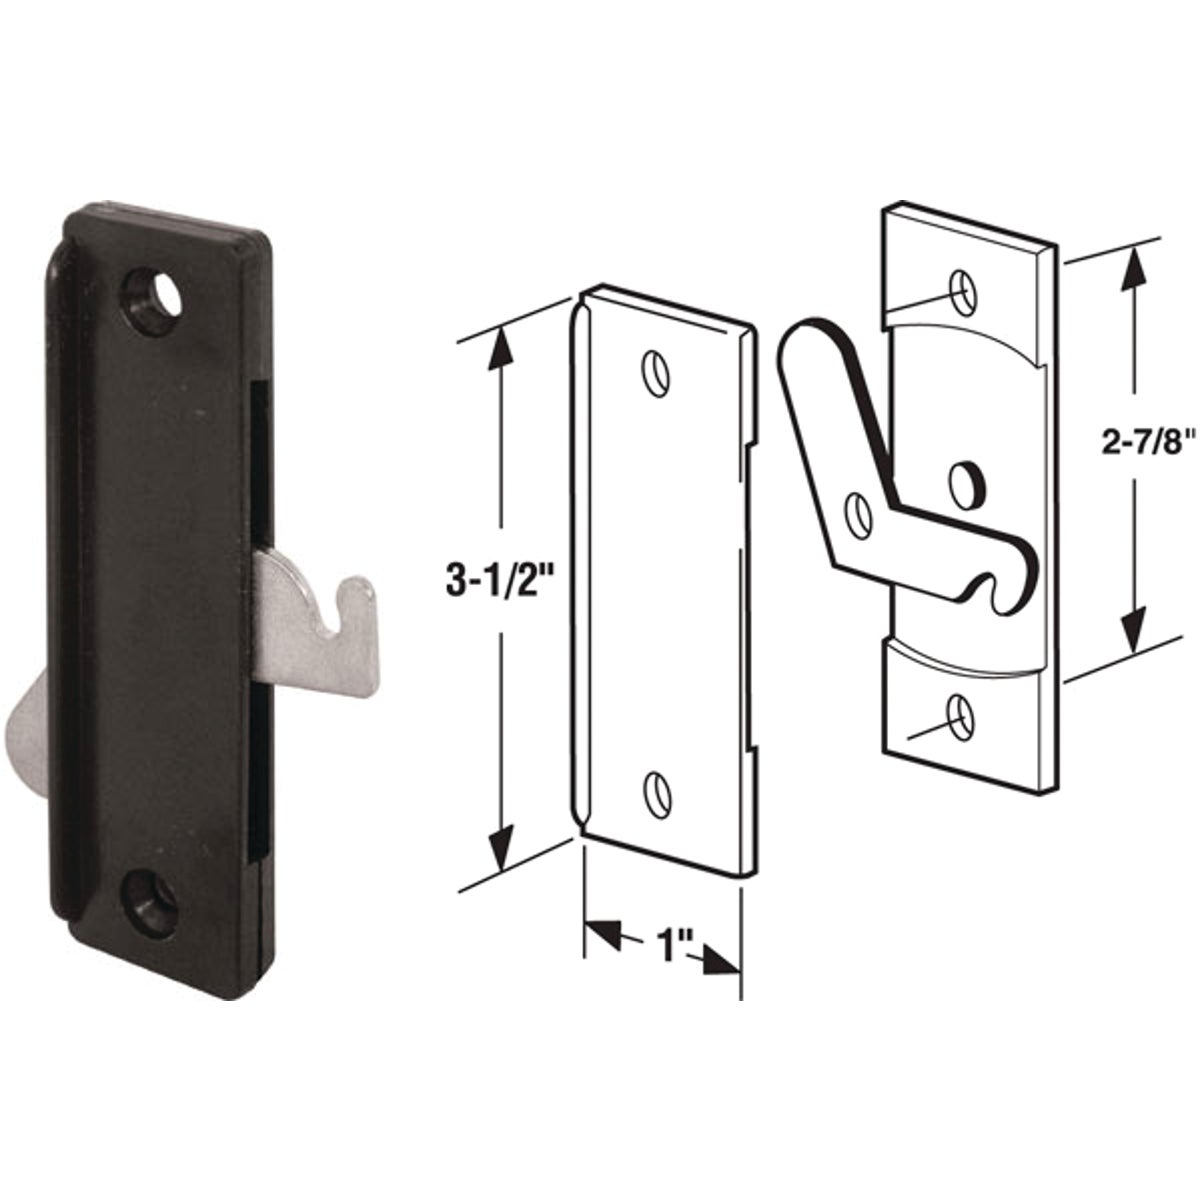 SCREEN DOOR LATCH - 12138 by Prime Line Products